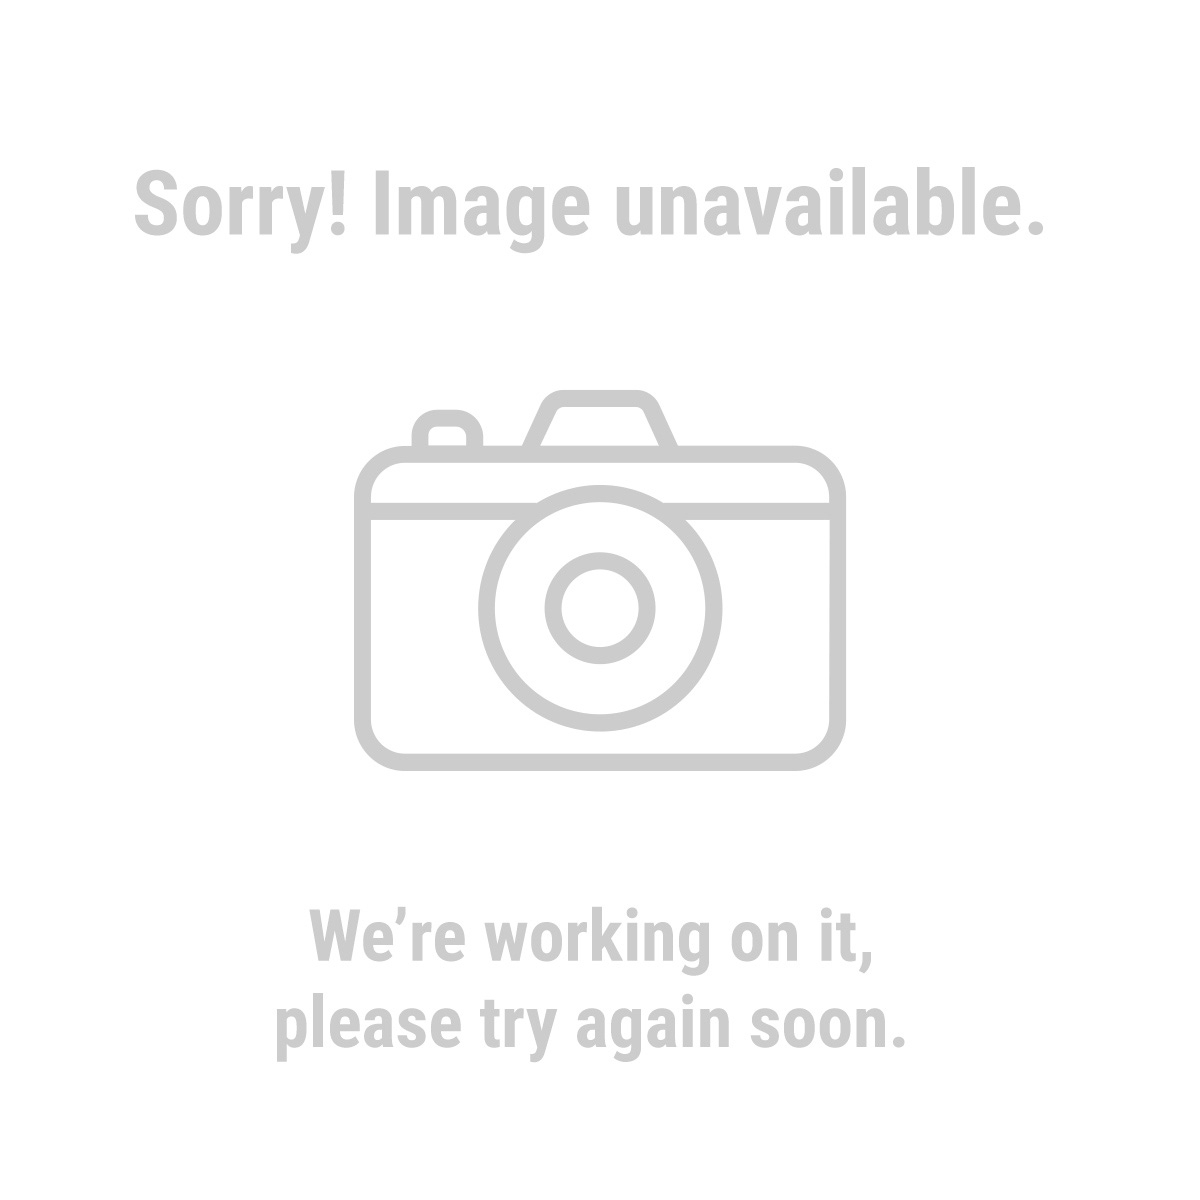 hight resolution of photos of harbor freight trash pump